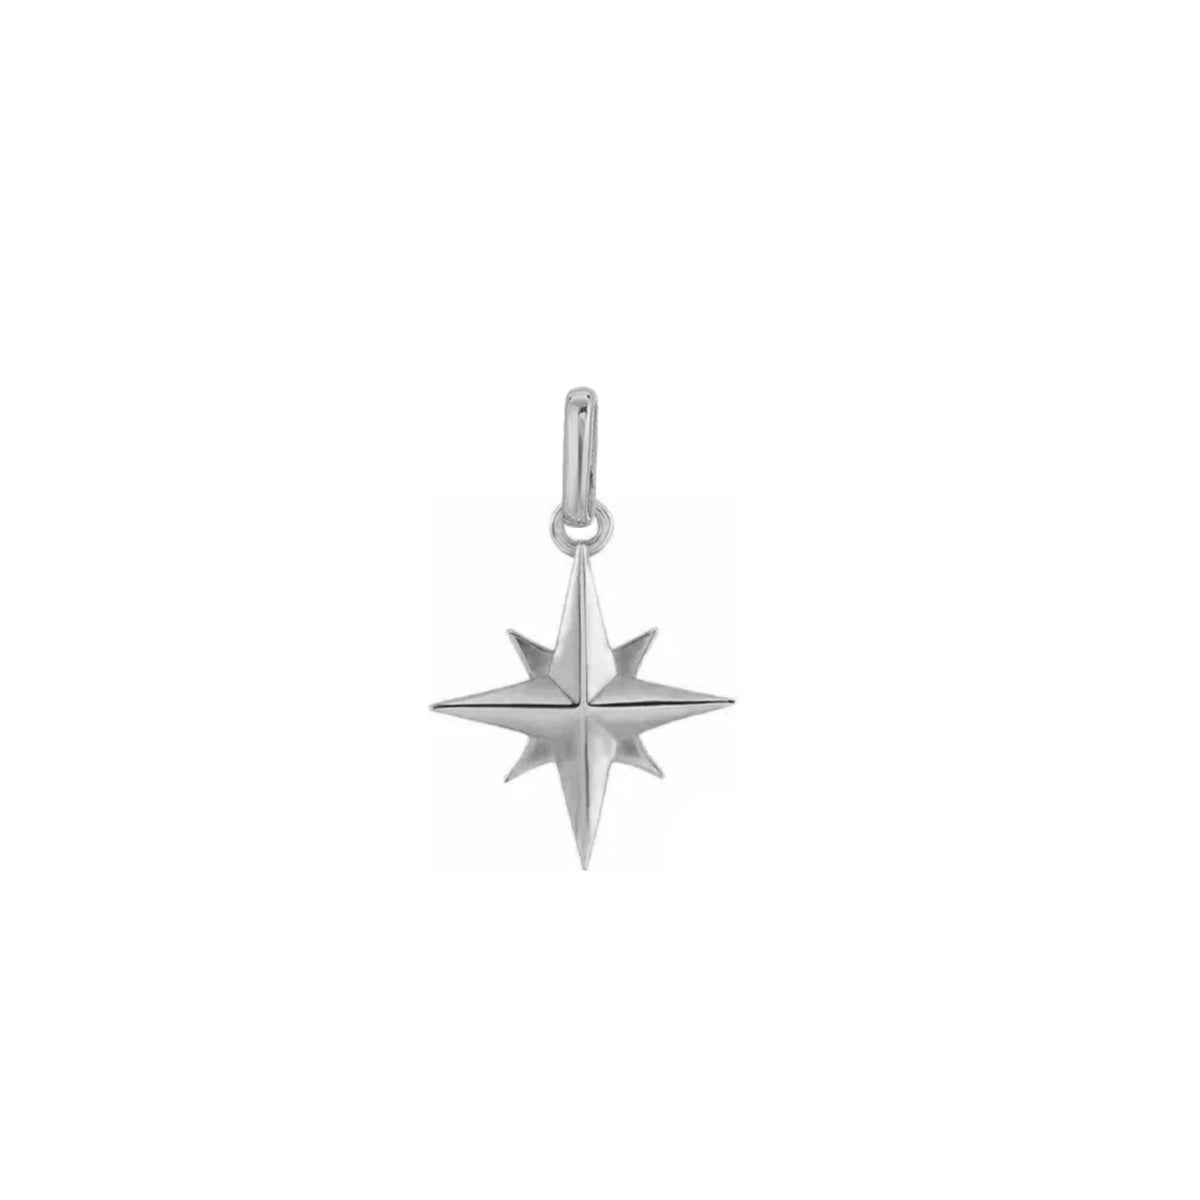 Starburst Charm - JBJ Charm Collection